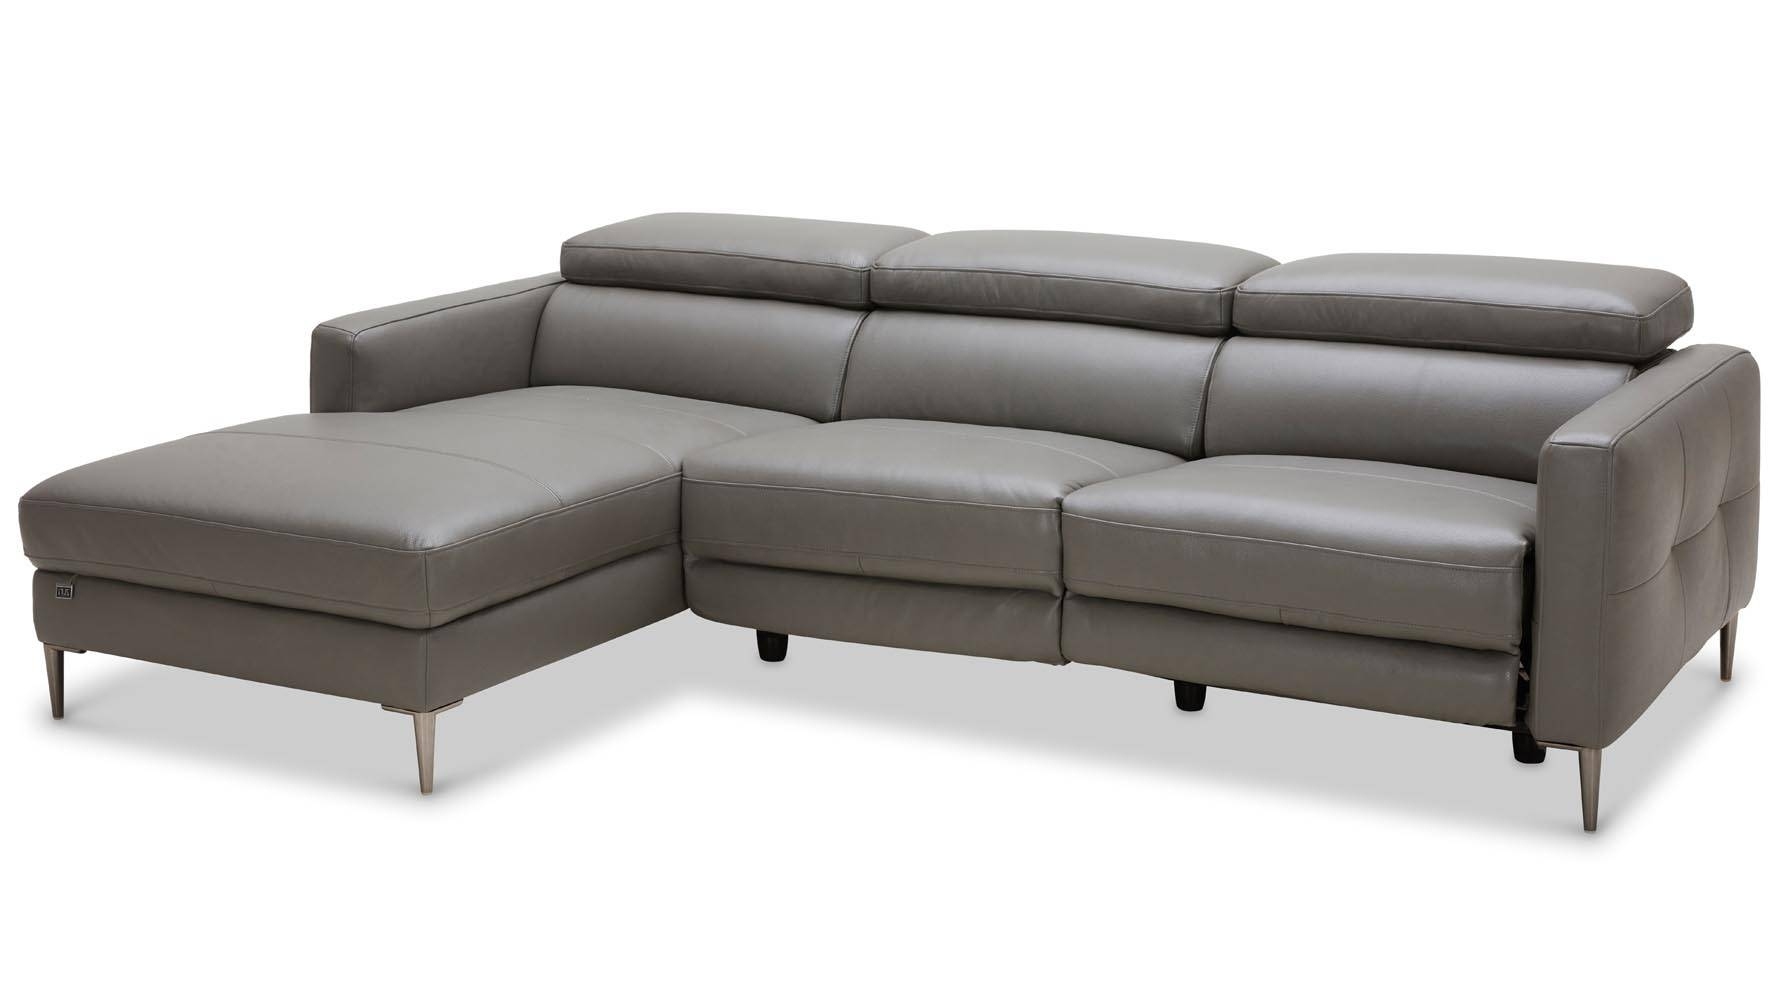 Modern Grey Leather Reno Sectional With Power Recliner Seat | Zuri Within Modern 3 Seater Sofas (View 22 of 30)